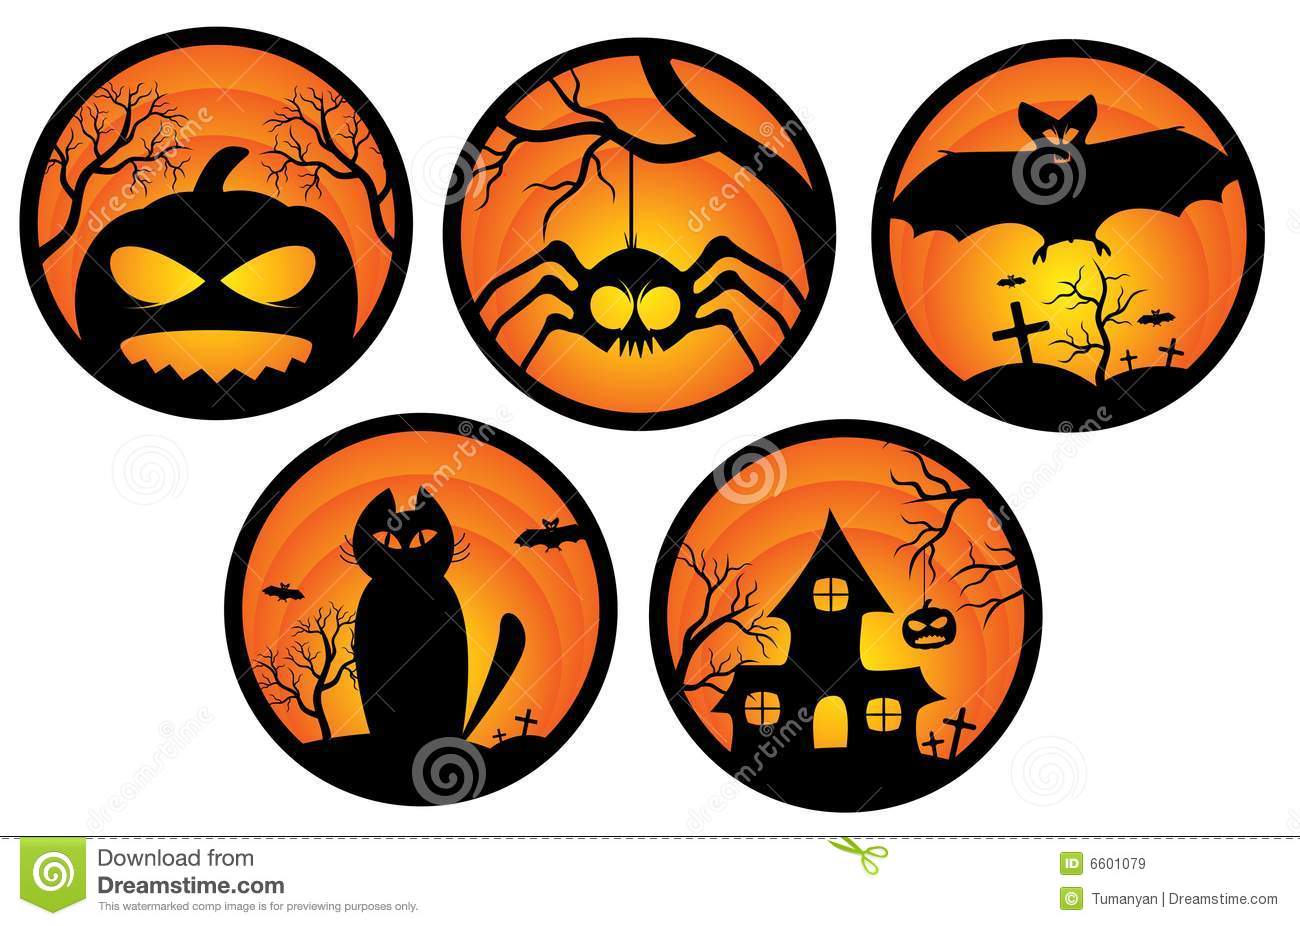 Halloween Stickers Illustration 6601079 - Megapixl